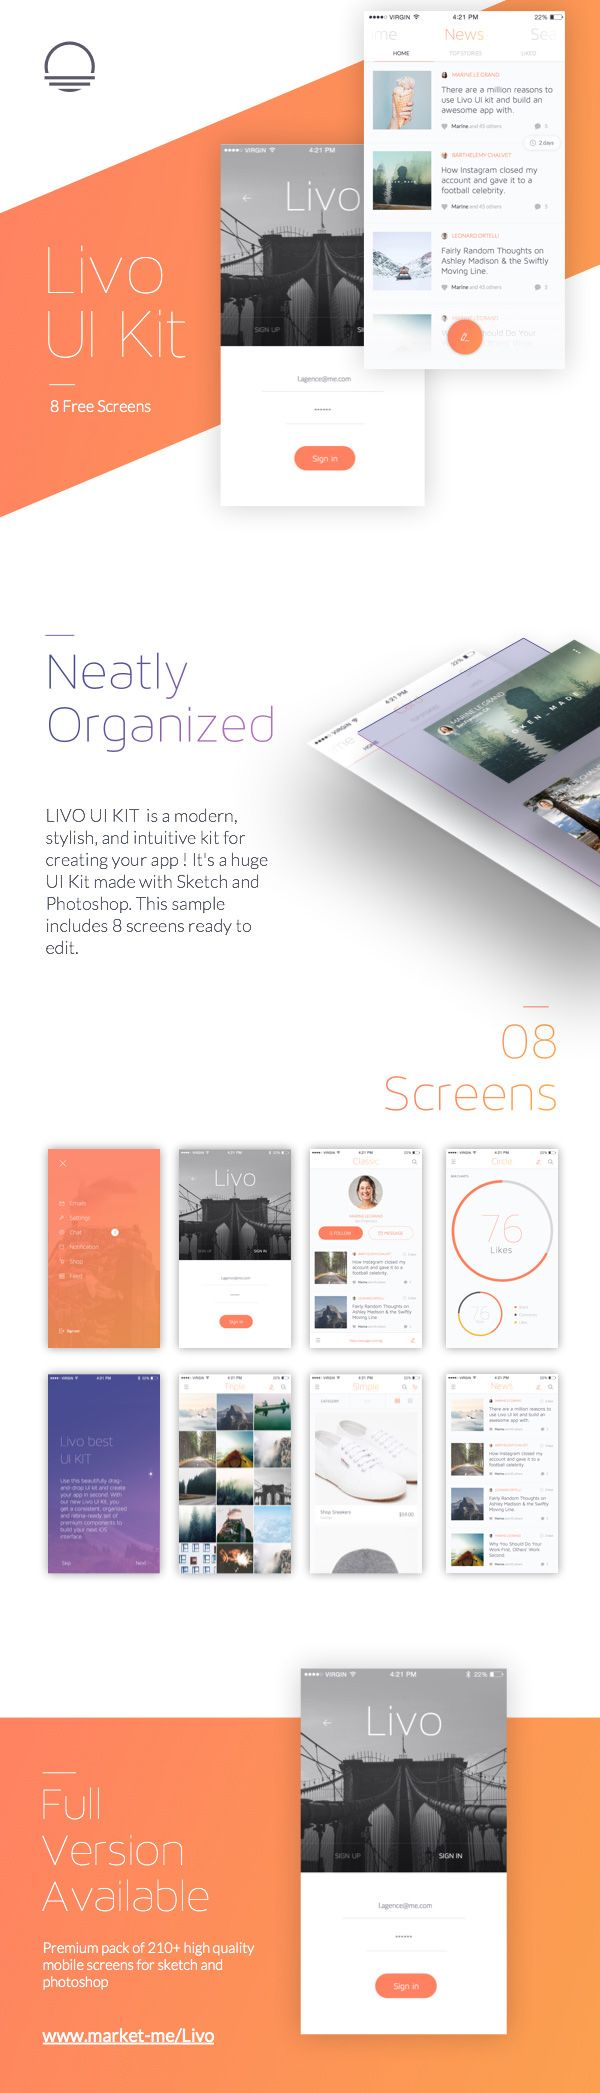 Today we have for you a neatly organized UI kit with a polished design, to help you build your next mobile app...